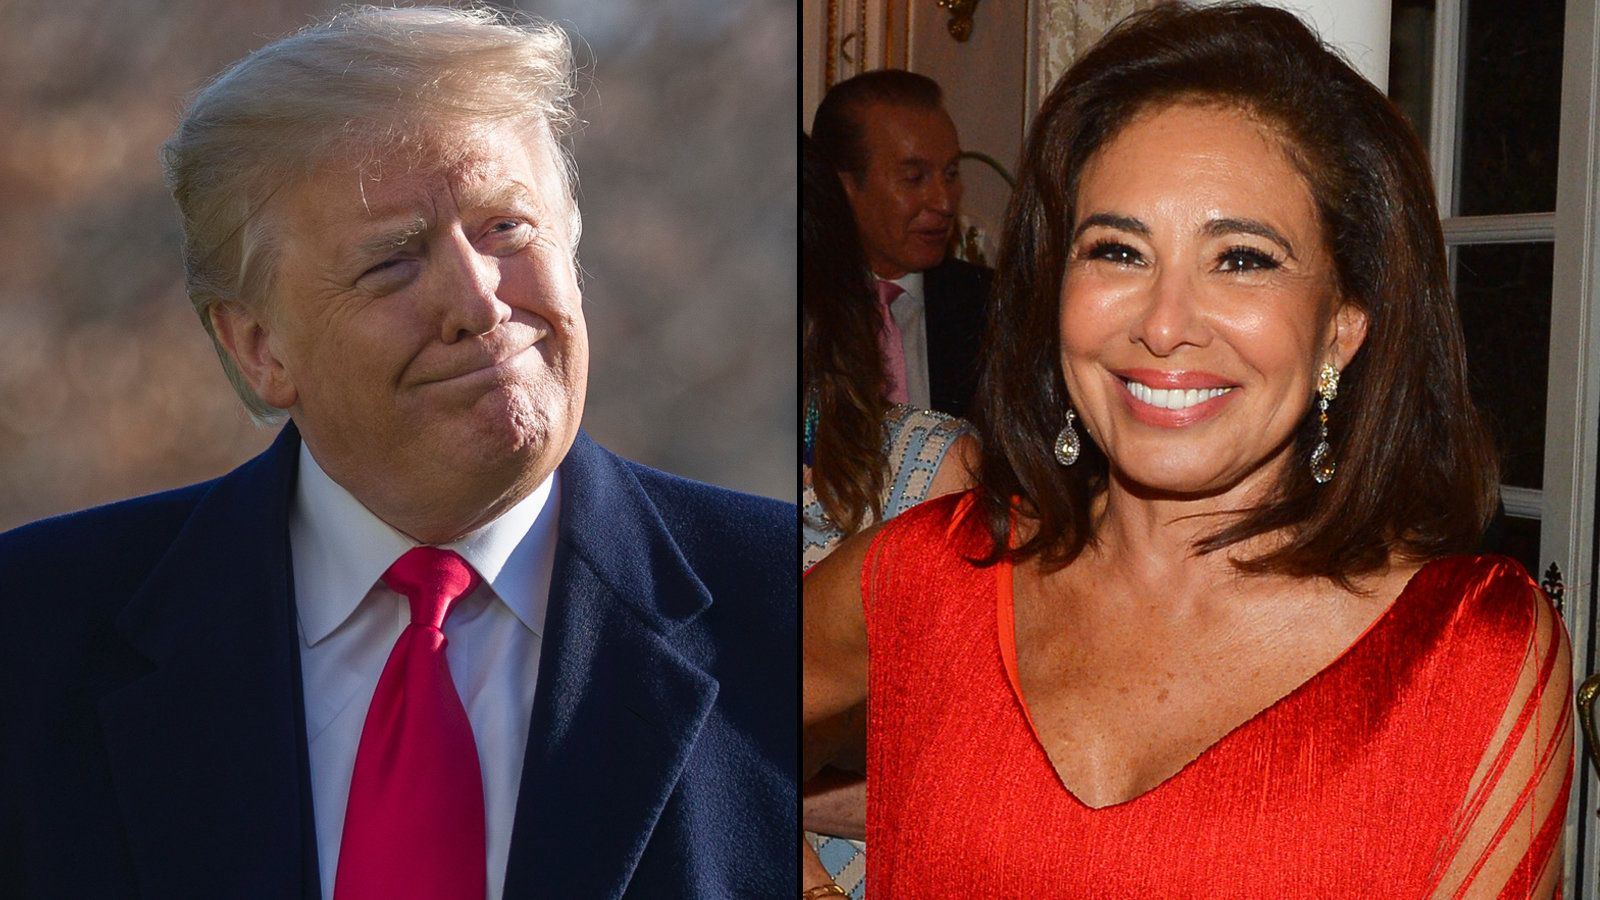 Trump Begs Fox News To 'Bring Back' Jeanine Pirro After Her Ilhan Omar